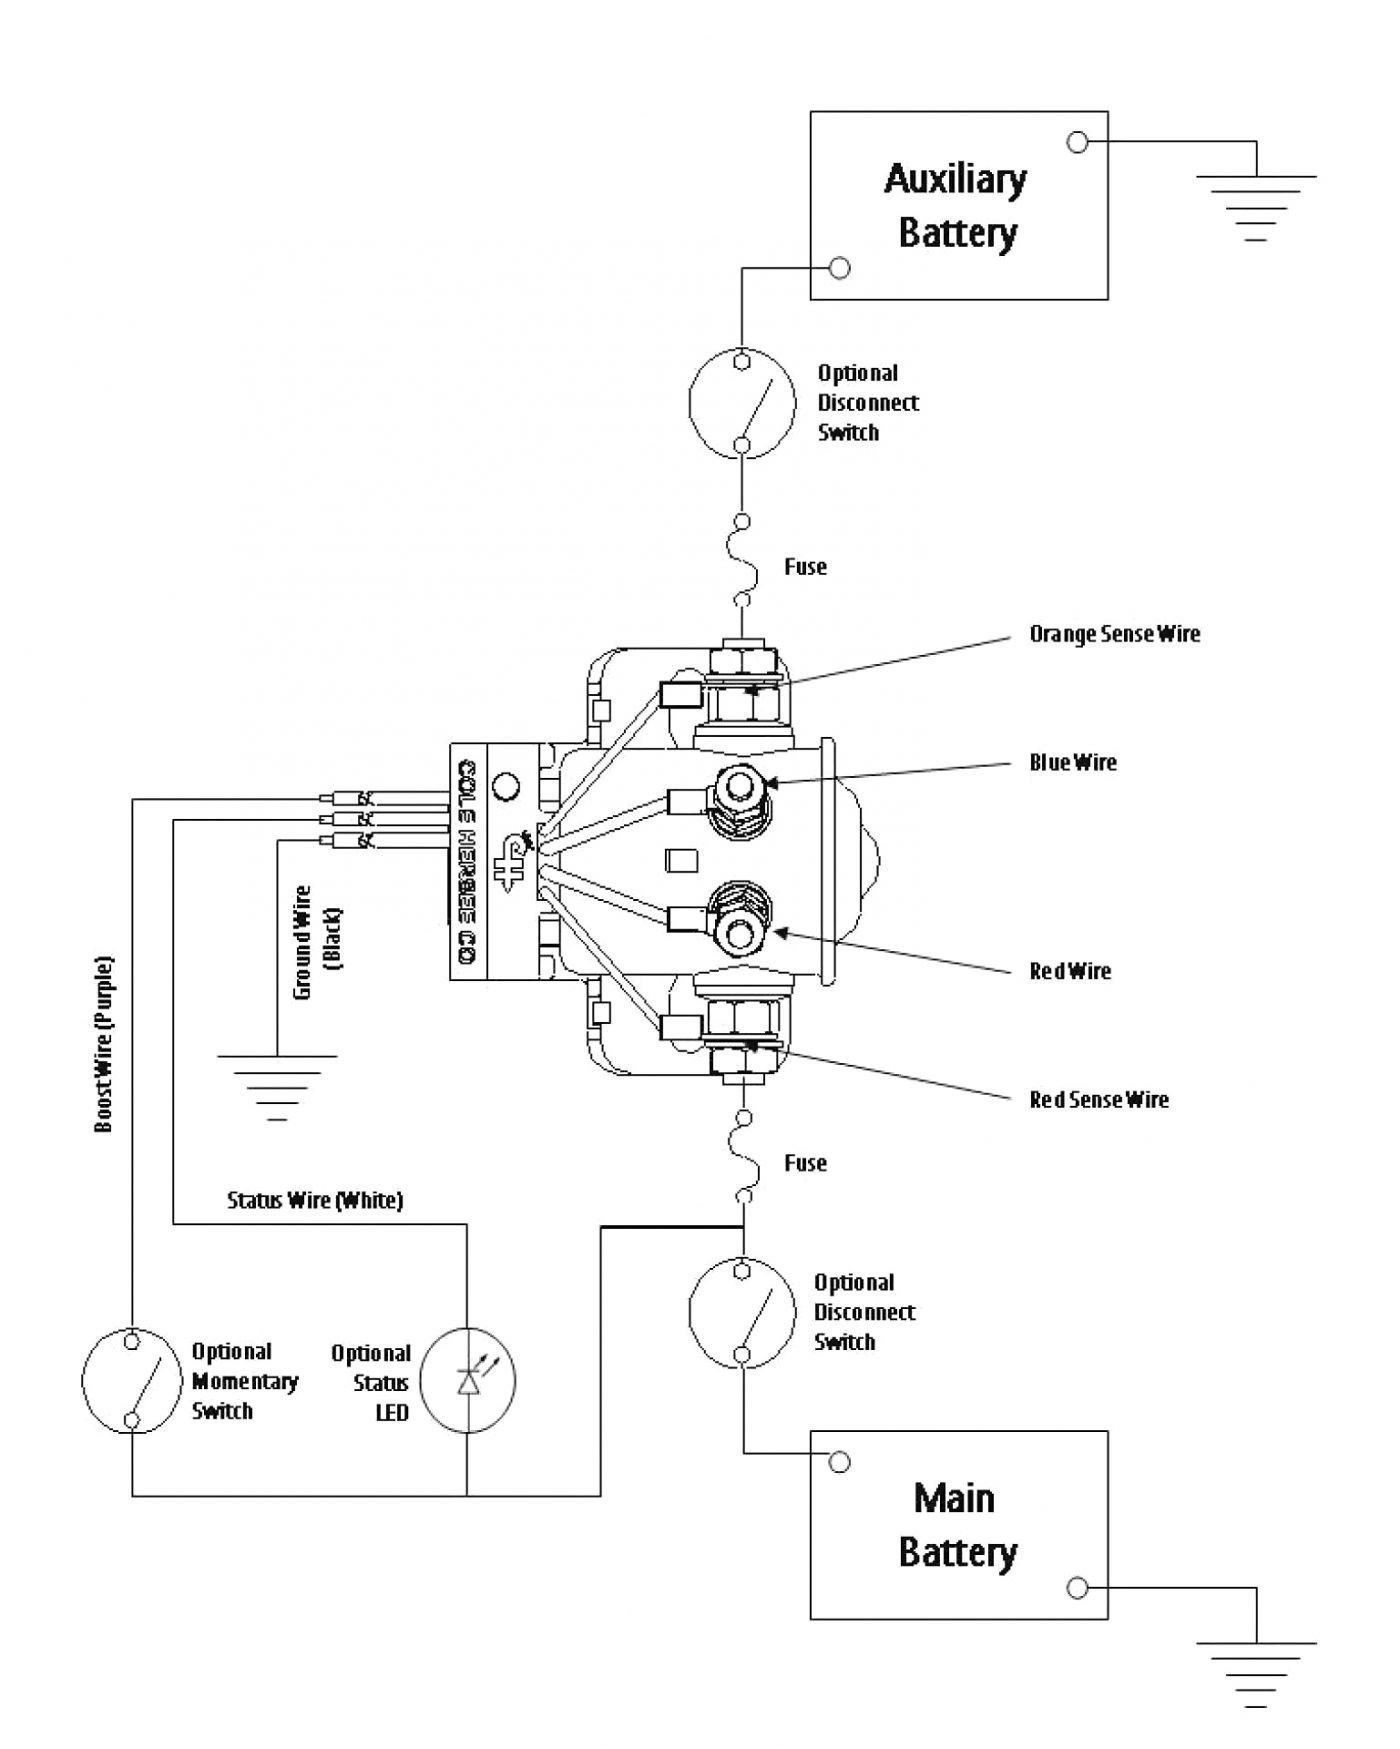 Dual Battery Wiring Diagram Relay Save Rv Battery Disconnect Switch Electrical Wiring Diagram Diagram Boat Wiring